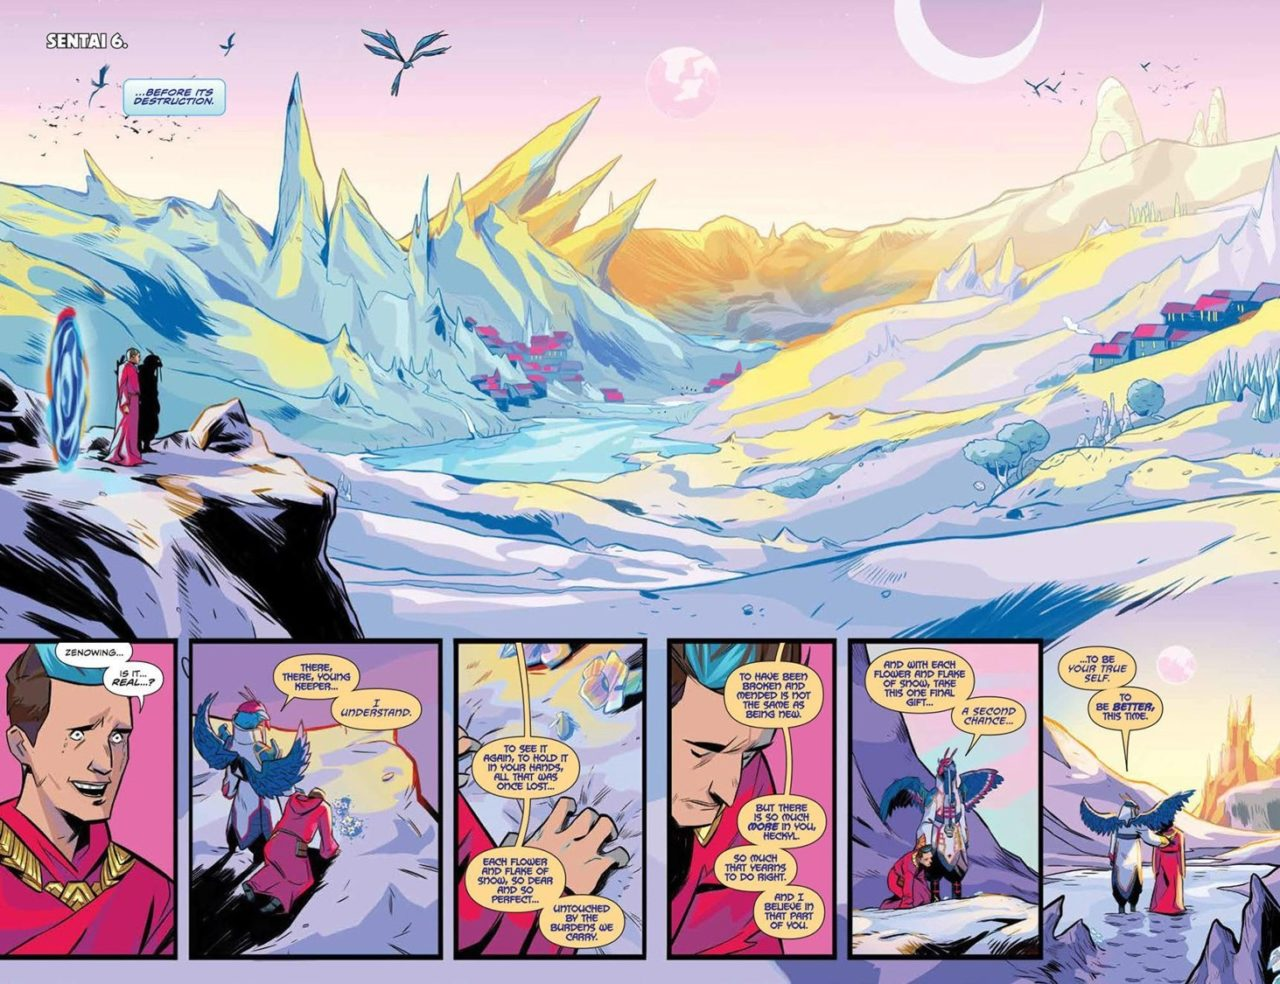 Heckyl returns to Sentai 6 in Mighty Morphin Power Rangers #35 pages 4 and 5. Written by Marguerite Bennett and drawn by French Carlomagno and Francesco Mortarino. Published by BOOM! Studios. 30 January, 2019.